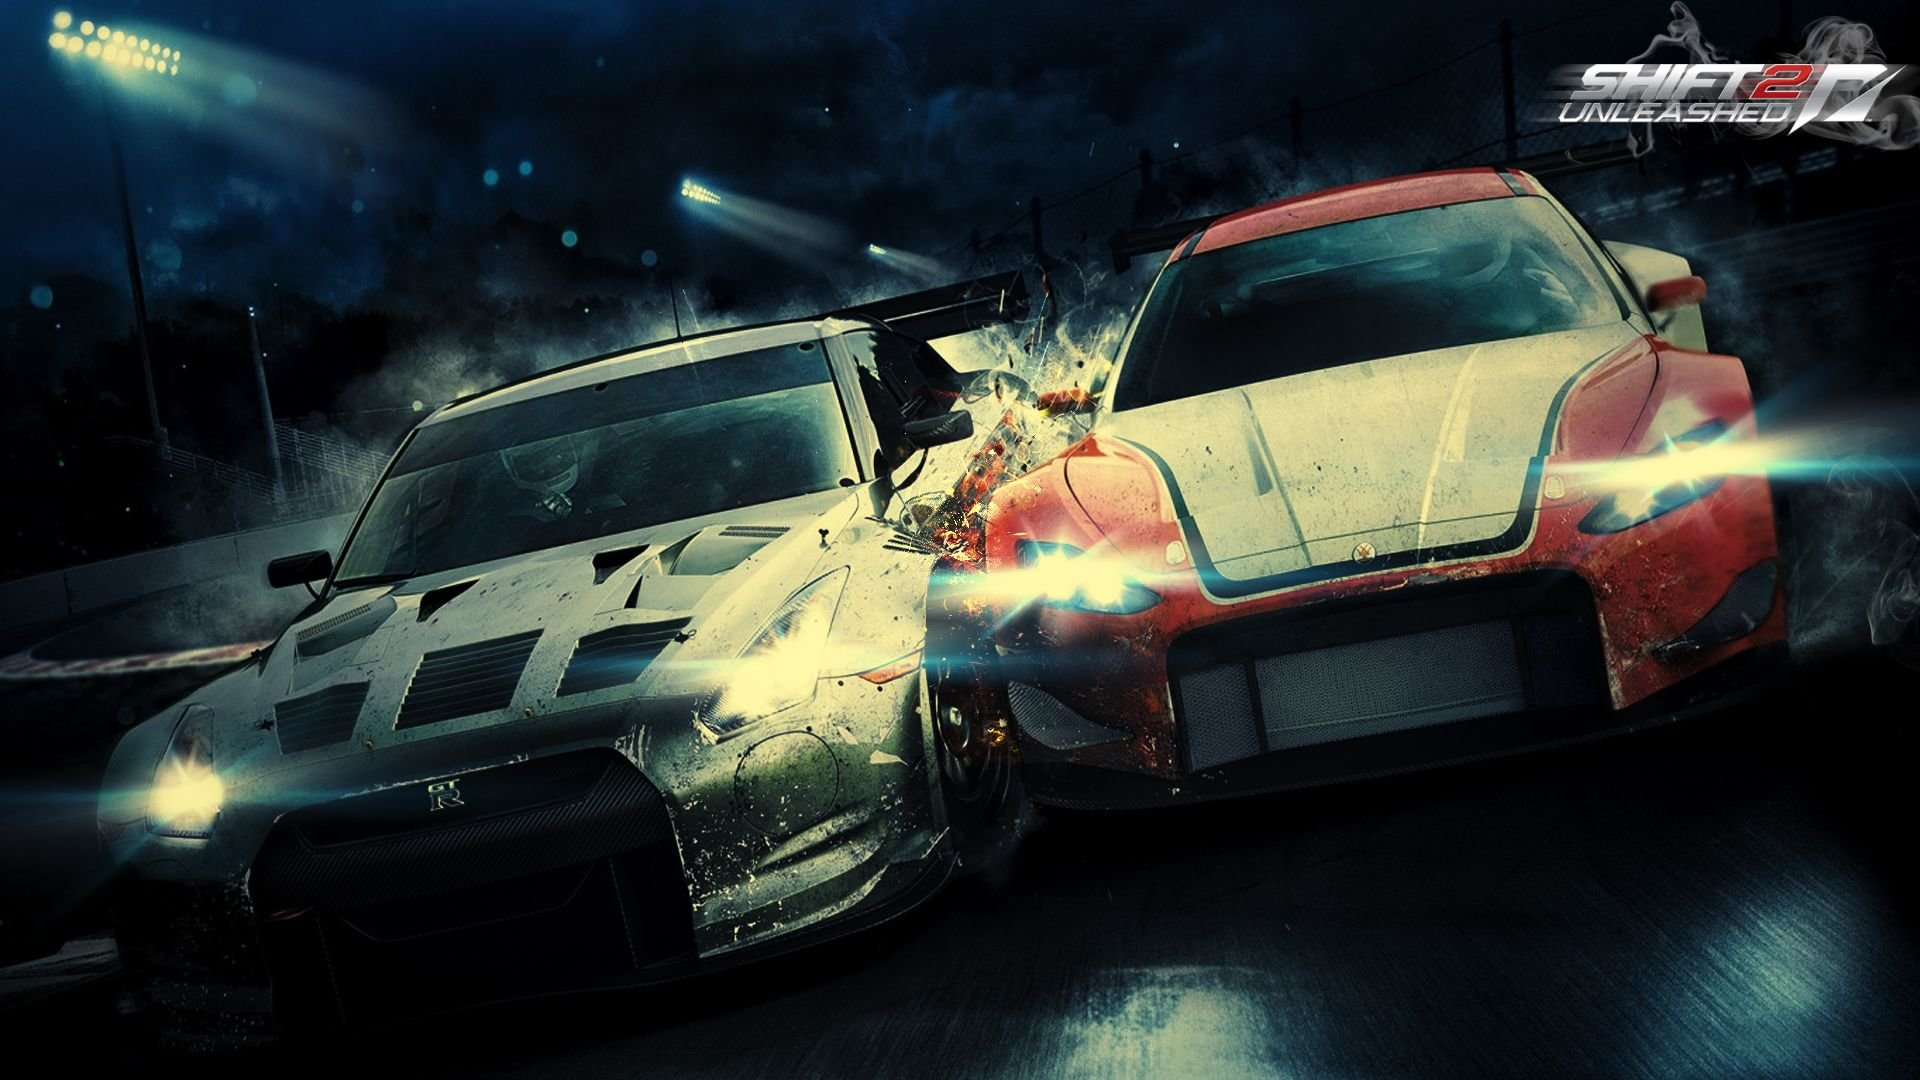 Need For Speed: Shift Wallpapers 1920x1080 Full HD (1080p